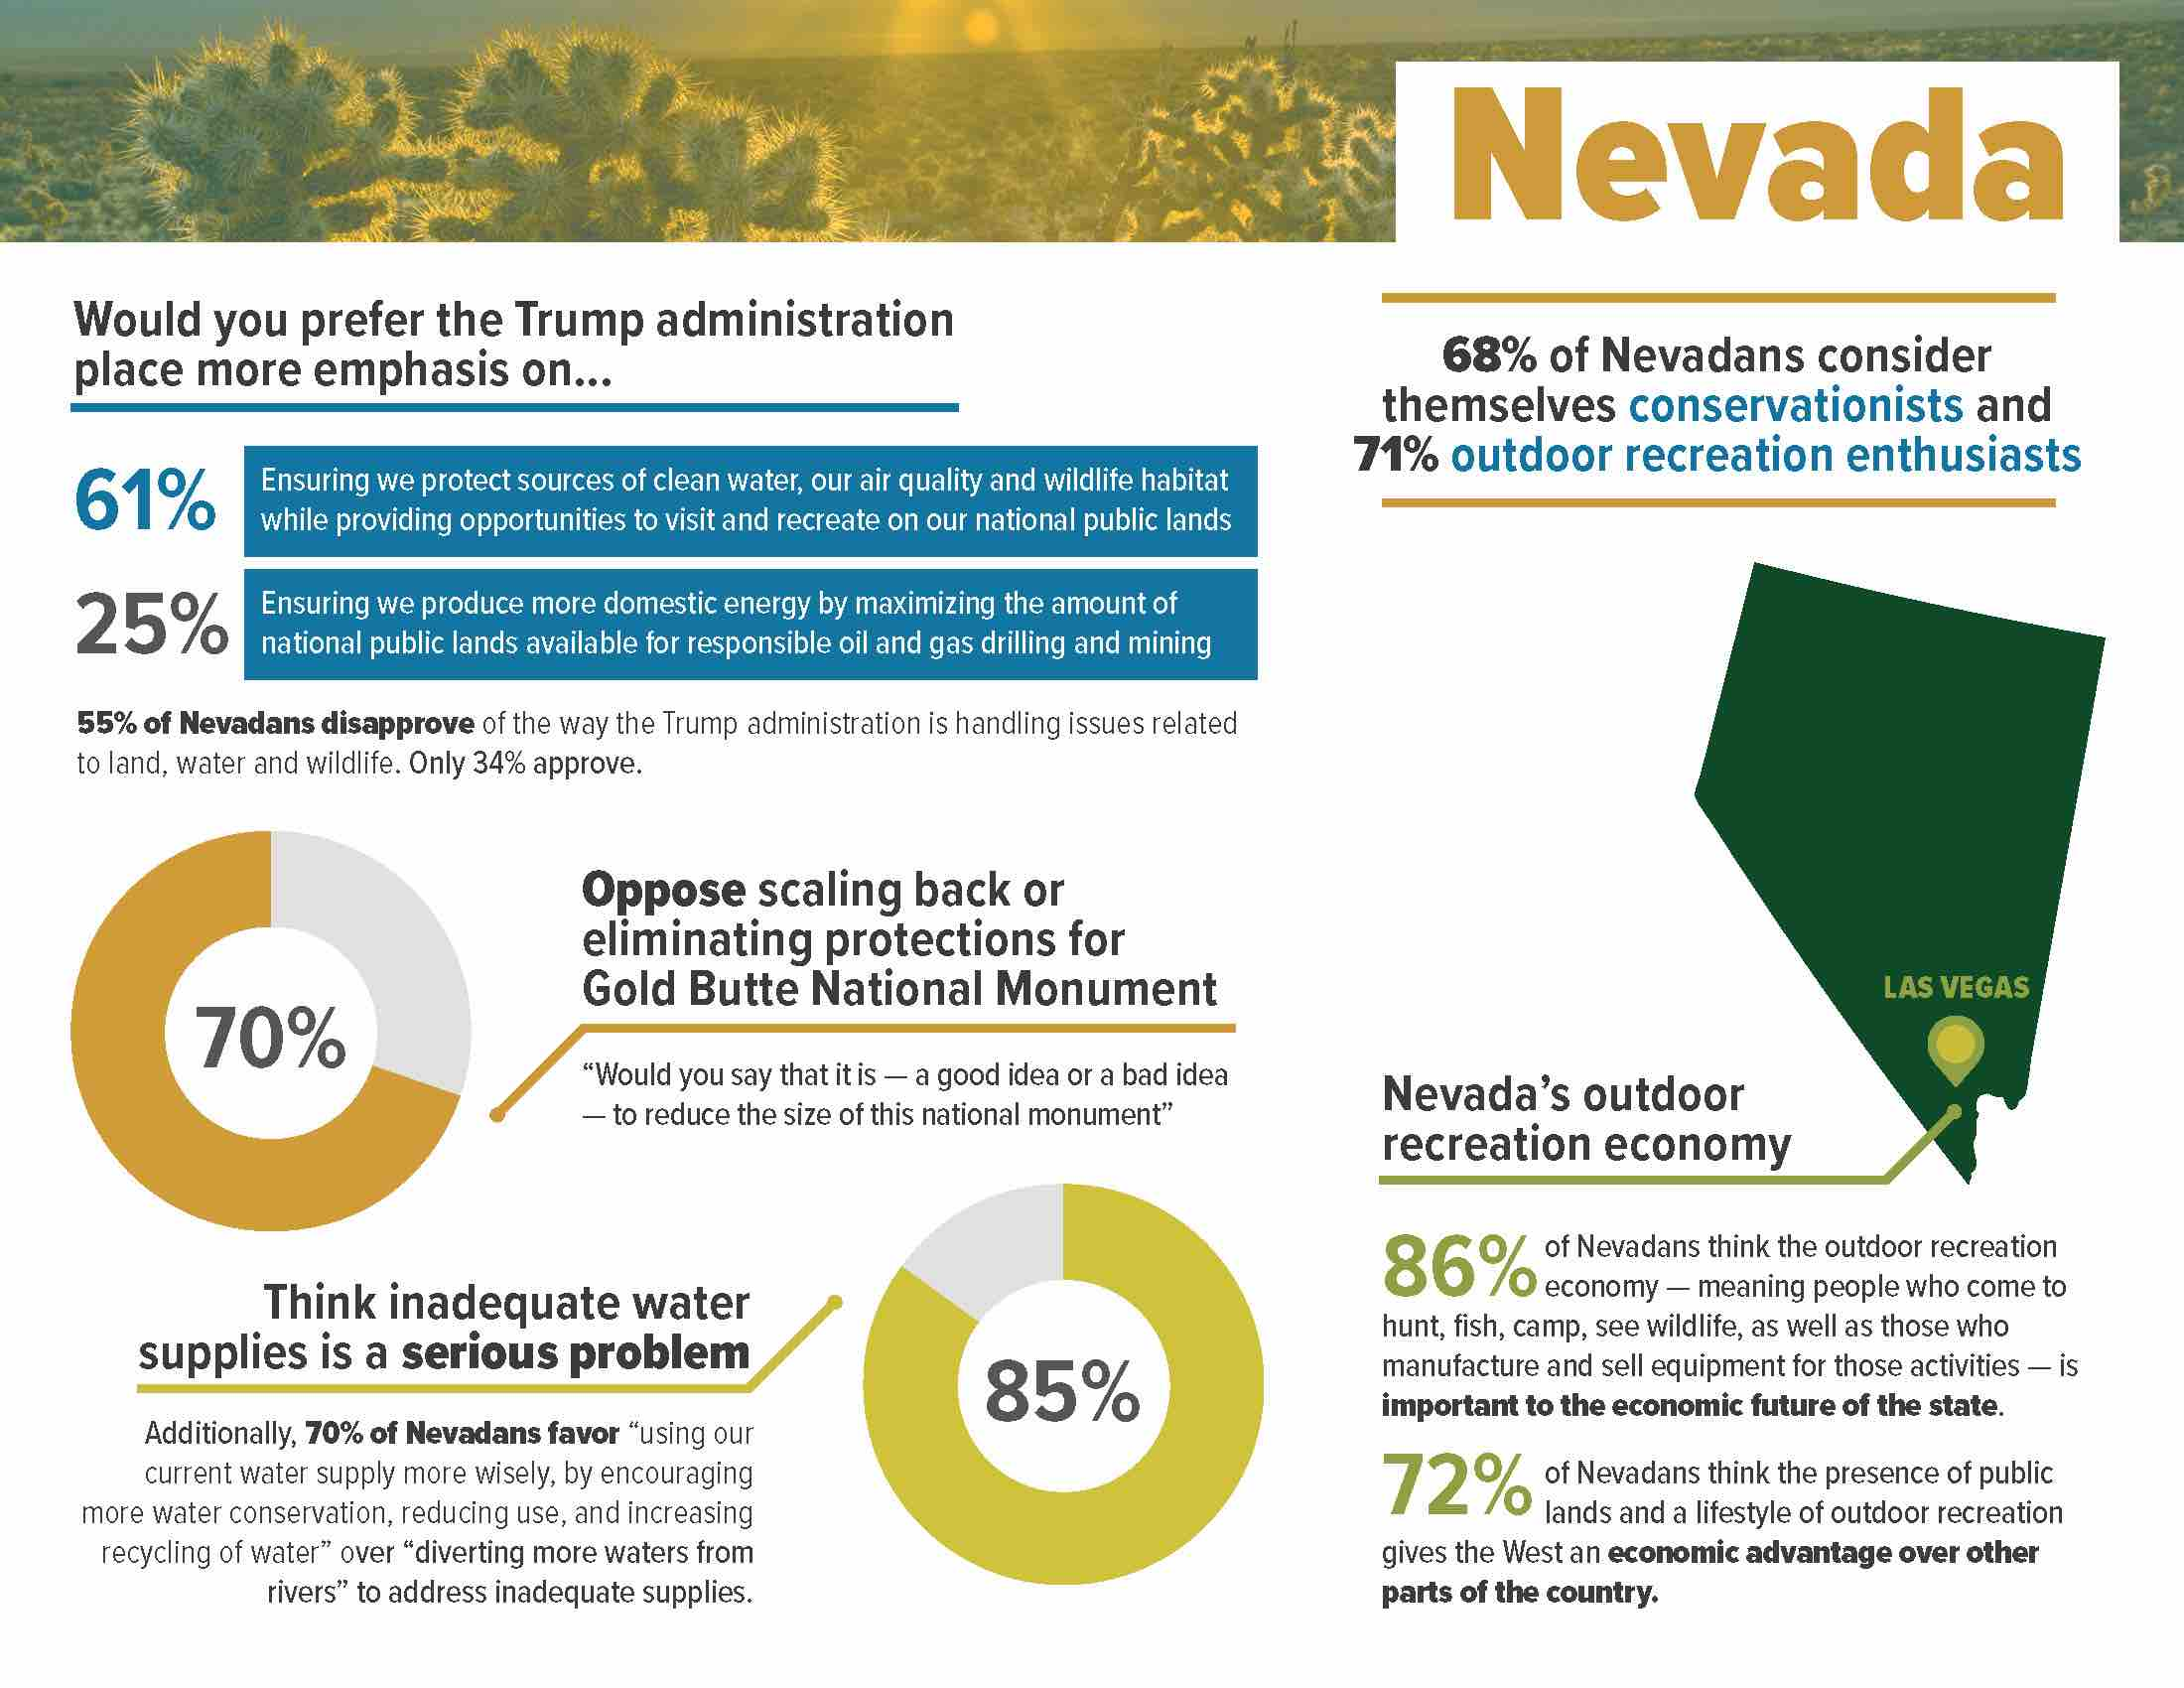 ConservationintheWest_2018__StateFactSheet_Nevada